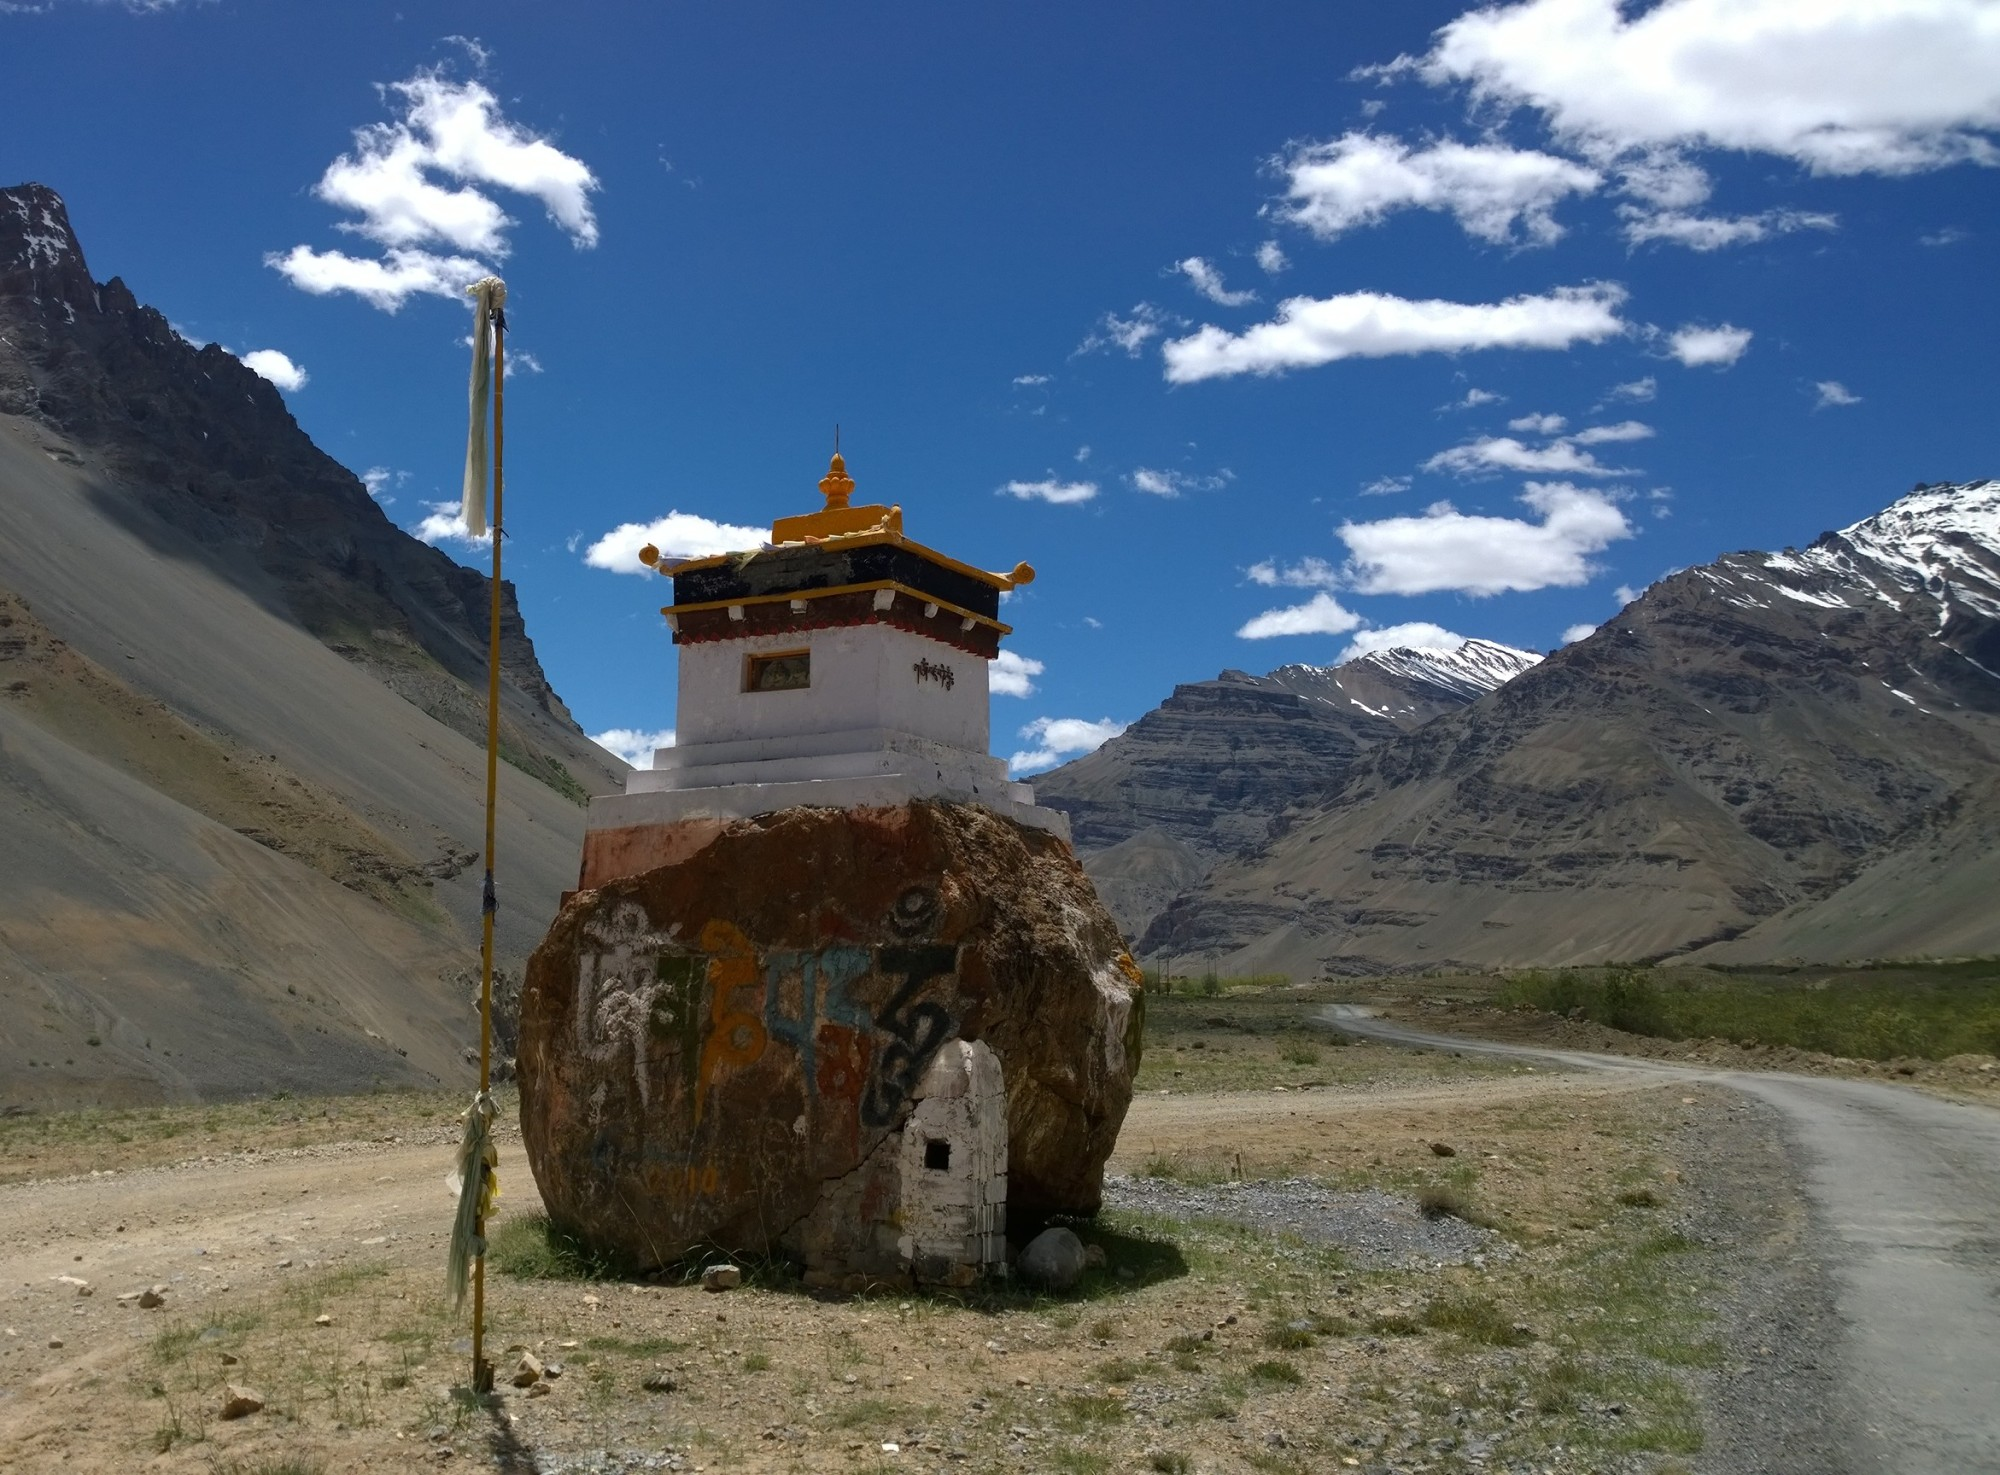 Short travel story from Leh